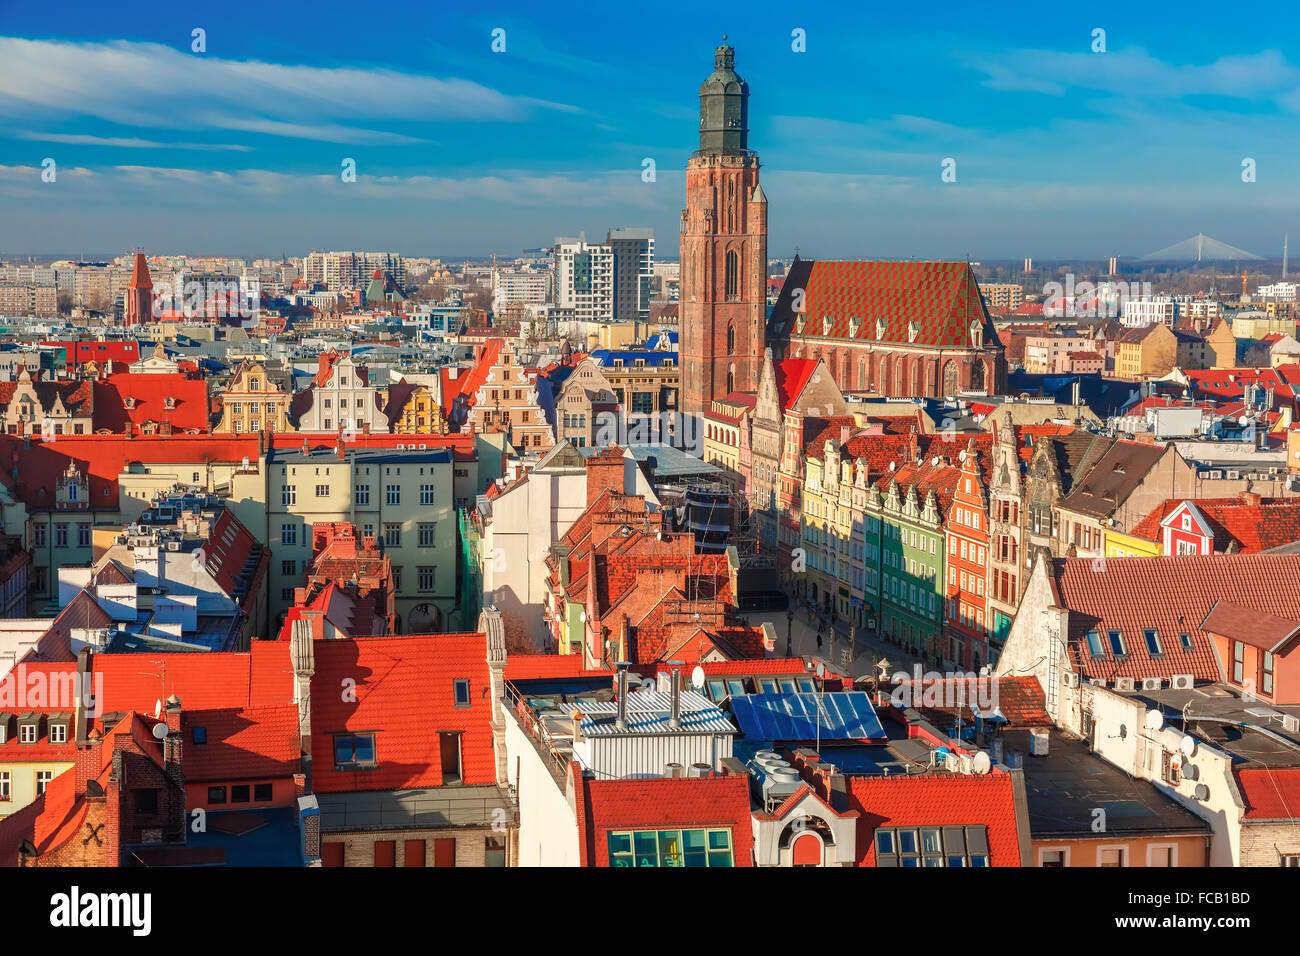 Aerial view of Wroclaw in the morning - Stock Image